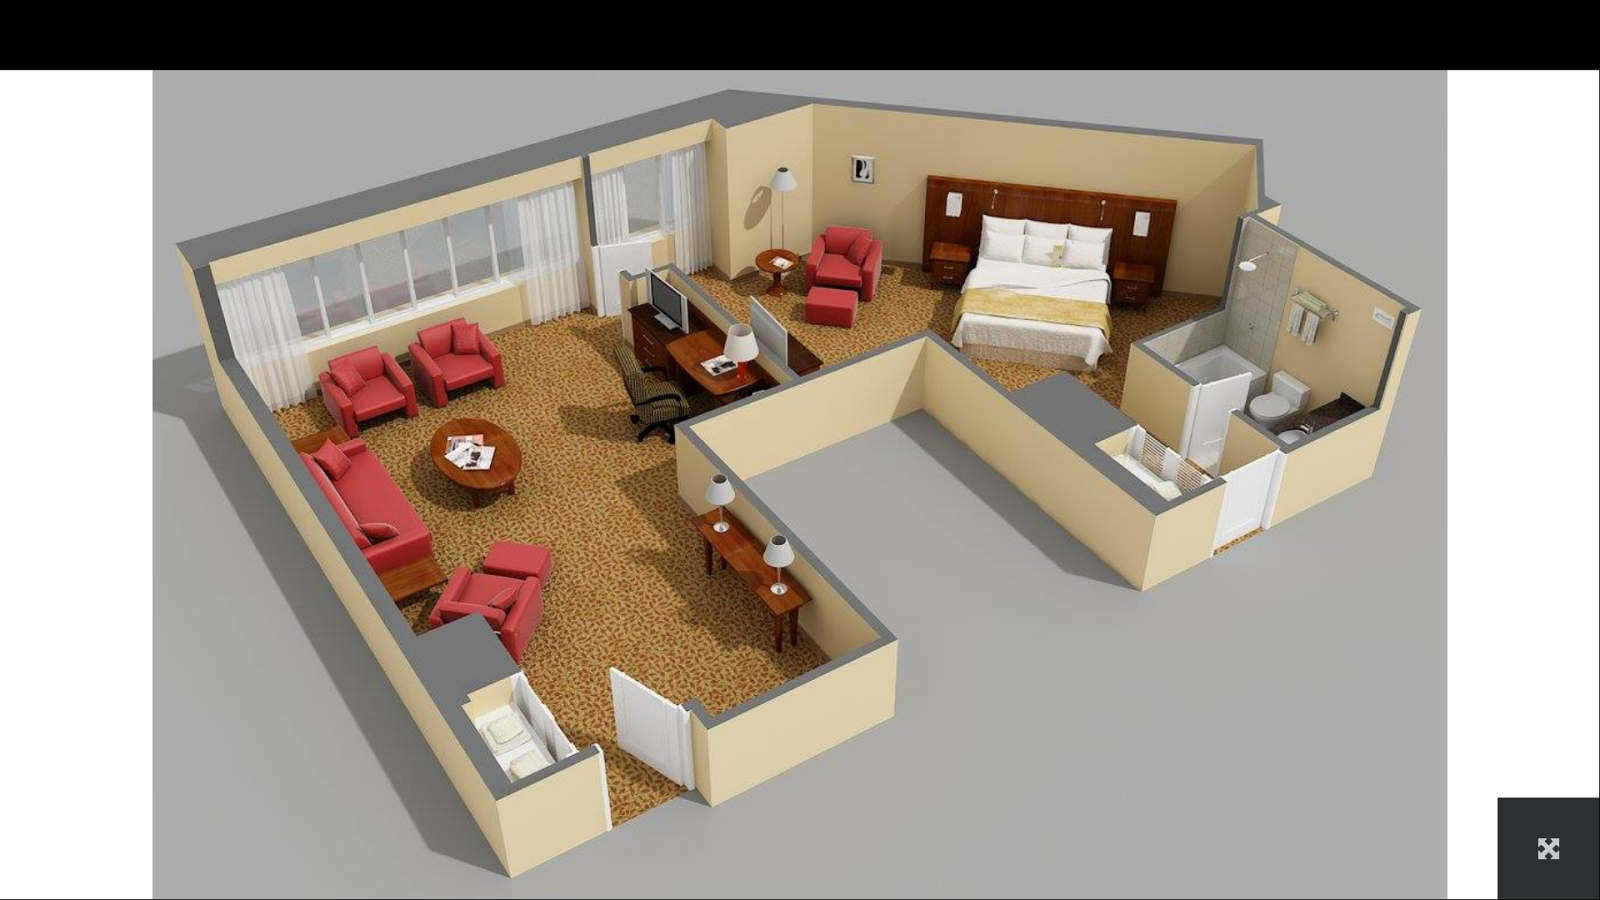 3D House Plans 1.2 APK Download - Android Lifestyle Apps on free cad drawing software, free beautiful house plans, two bedroom house plans, free online house plans, free design your own house, free graphics software from microsoft, ranch house plans, tiny house floor plans, nature house plans, free software downloads, free downloadable floor plan software, small house plans, modern 3 bedroom house plans, bird house plans, main house plans, gaming house plans, free tiny house plans, free printable house plans, free dwg house plans, home house plans,